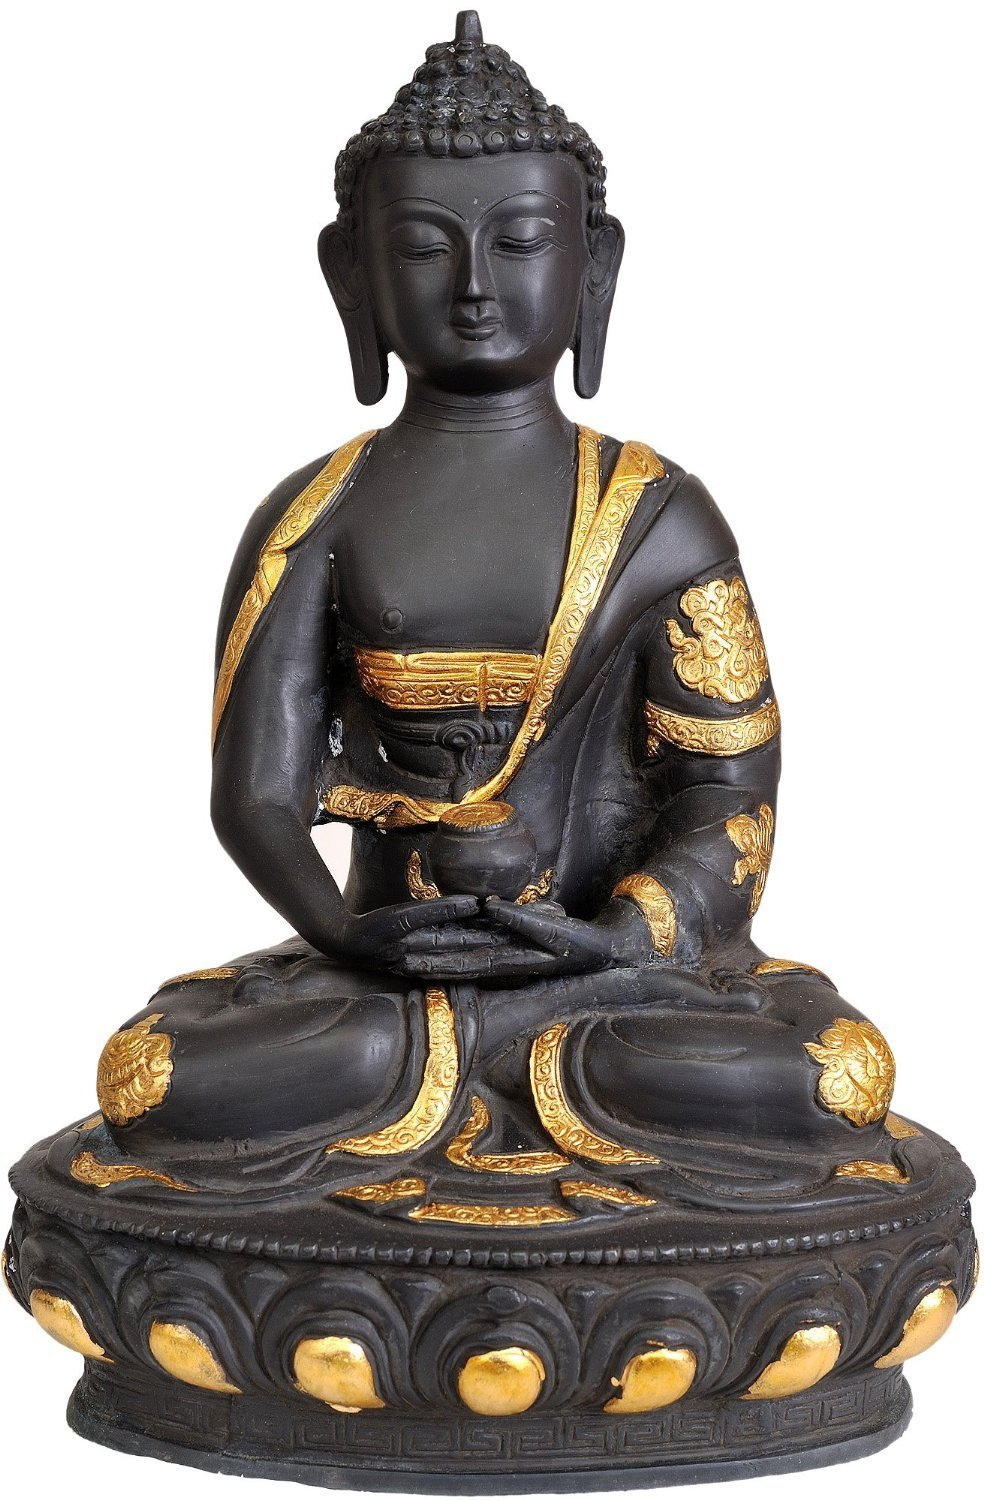 CraftVatika Brass Buddha Statue in Dhyani Meditating Pose -Thai Buddhism Peace Harmony Antique Sculptures by CraftVatika